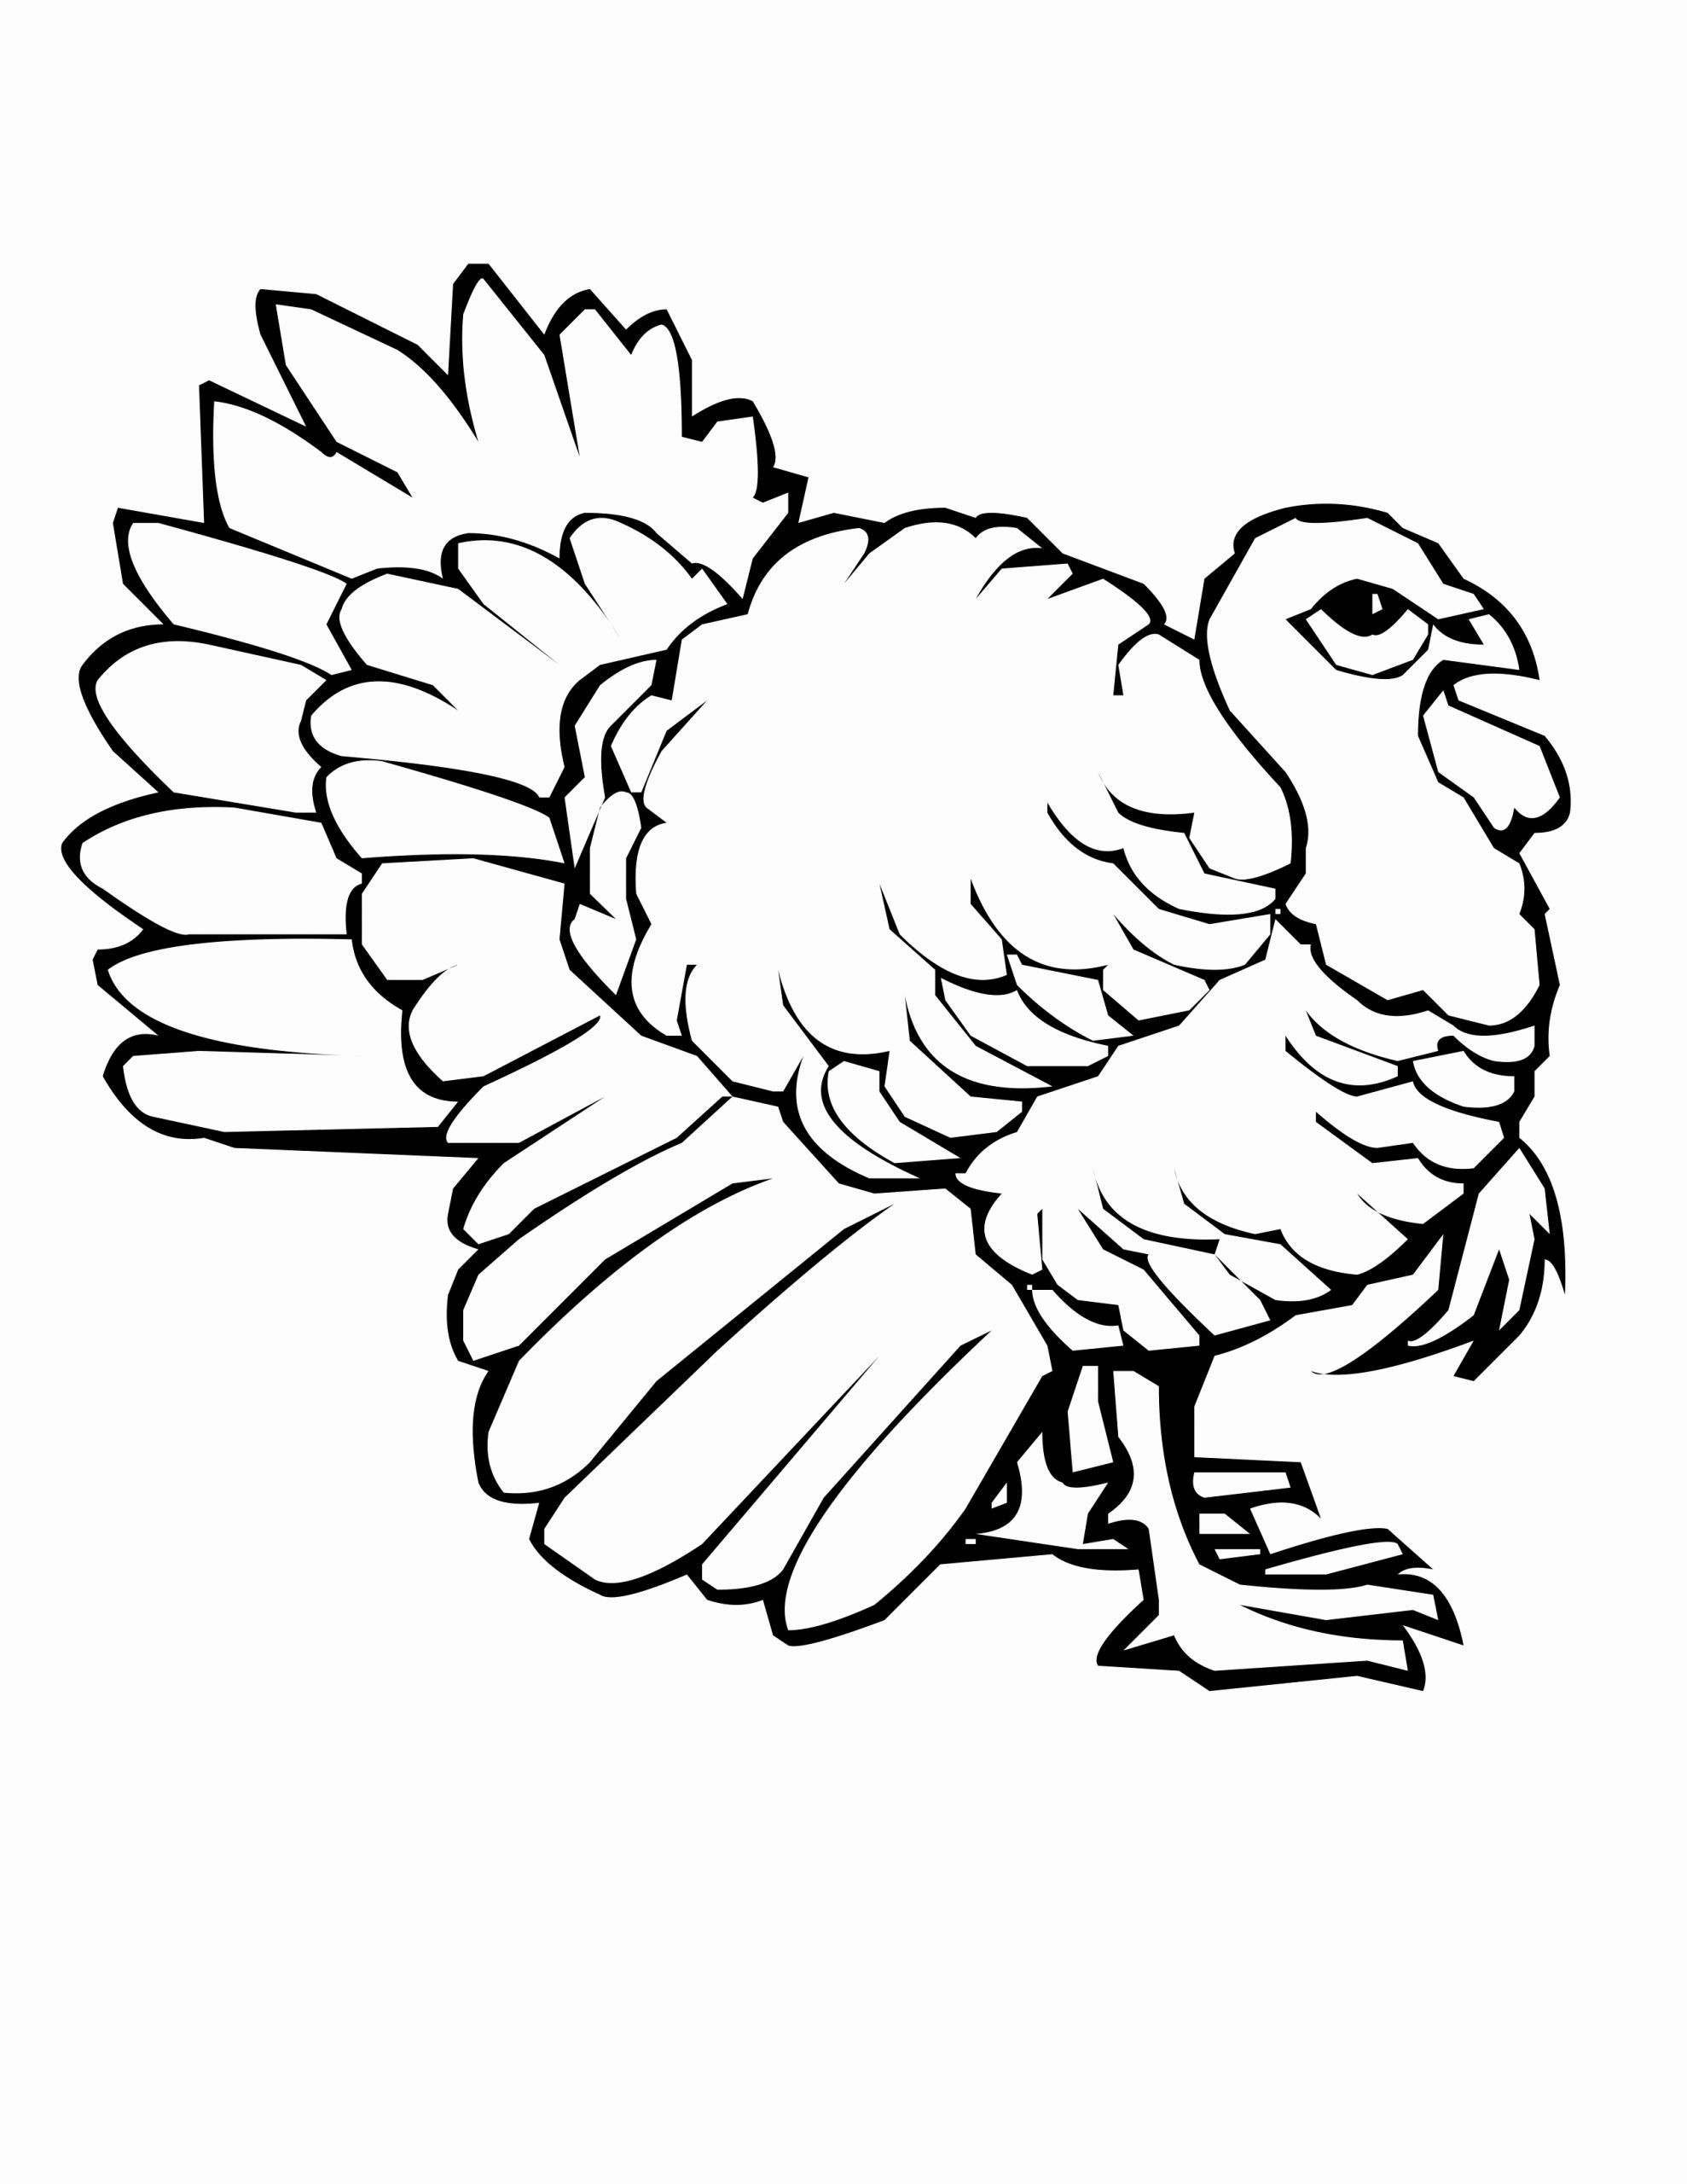 Turkey Coloring Pages Printable Awesome Free Printable Turkey Coloring Pages For Kids In 2020 Turkey Coloring Pages Animal Coloring Pages Thanksgiving Coloring Pages